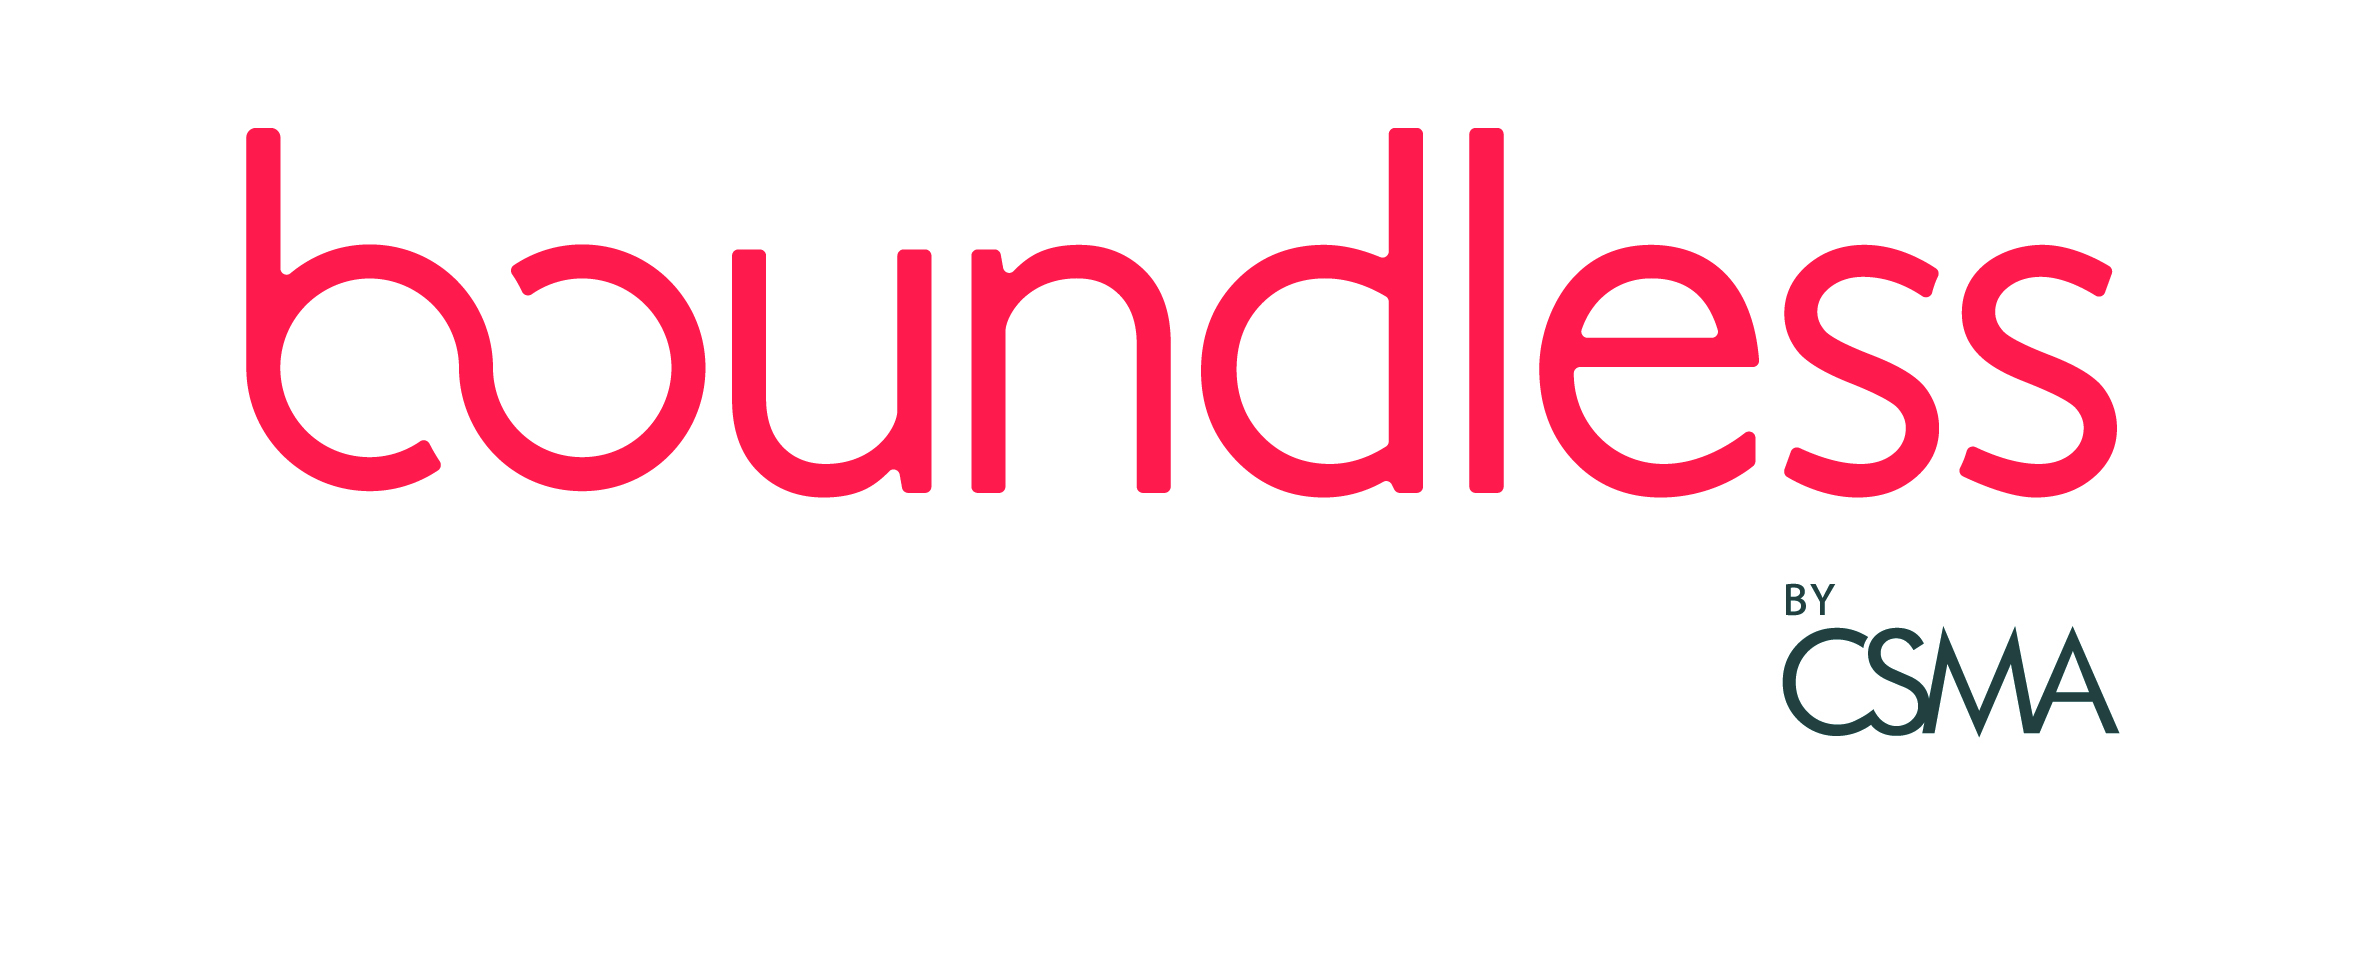 Save up to 10% more with Boundless by CSMA